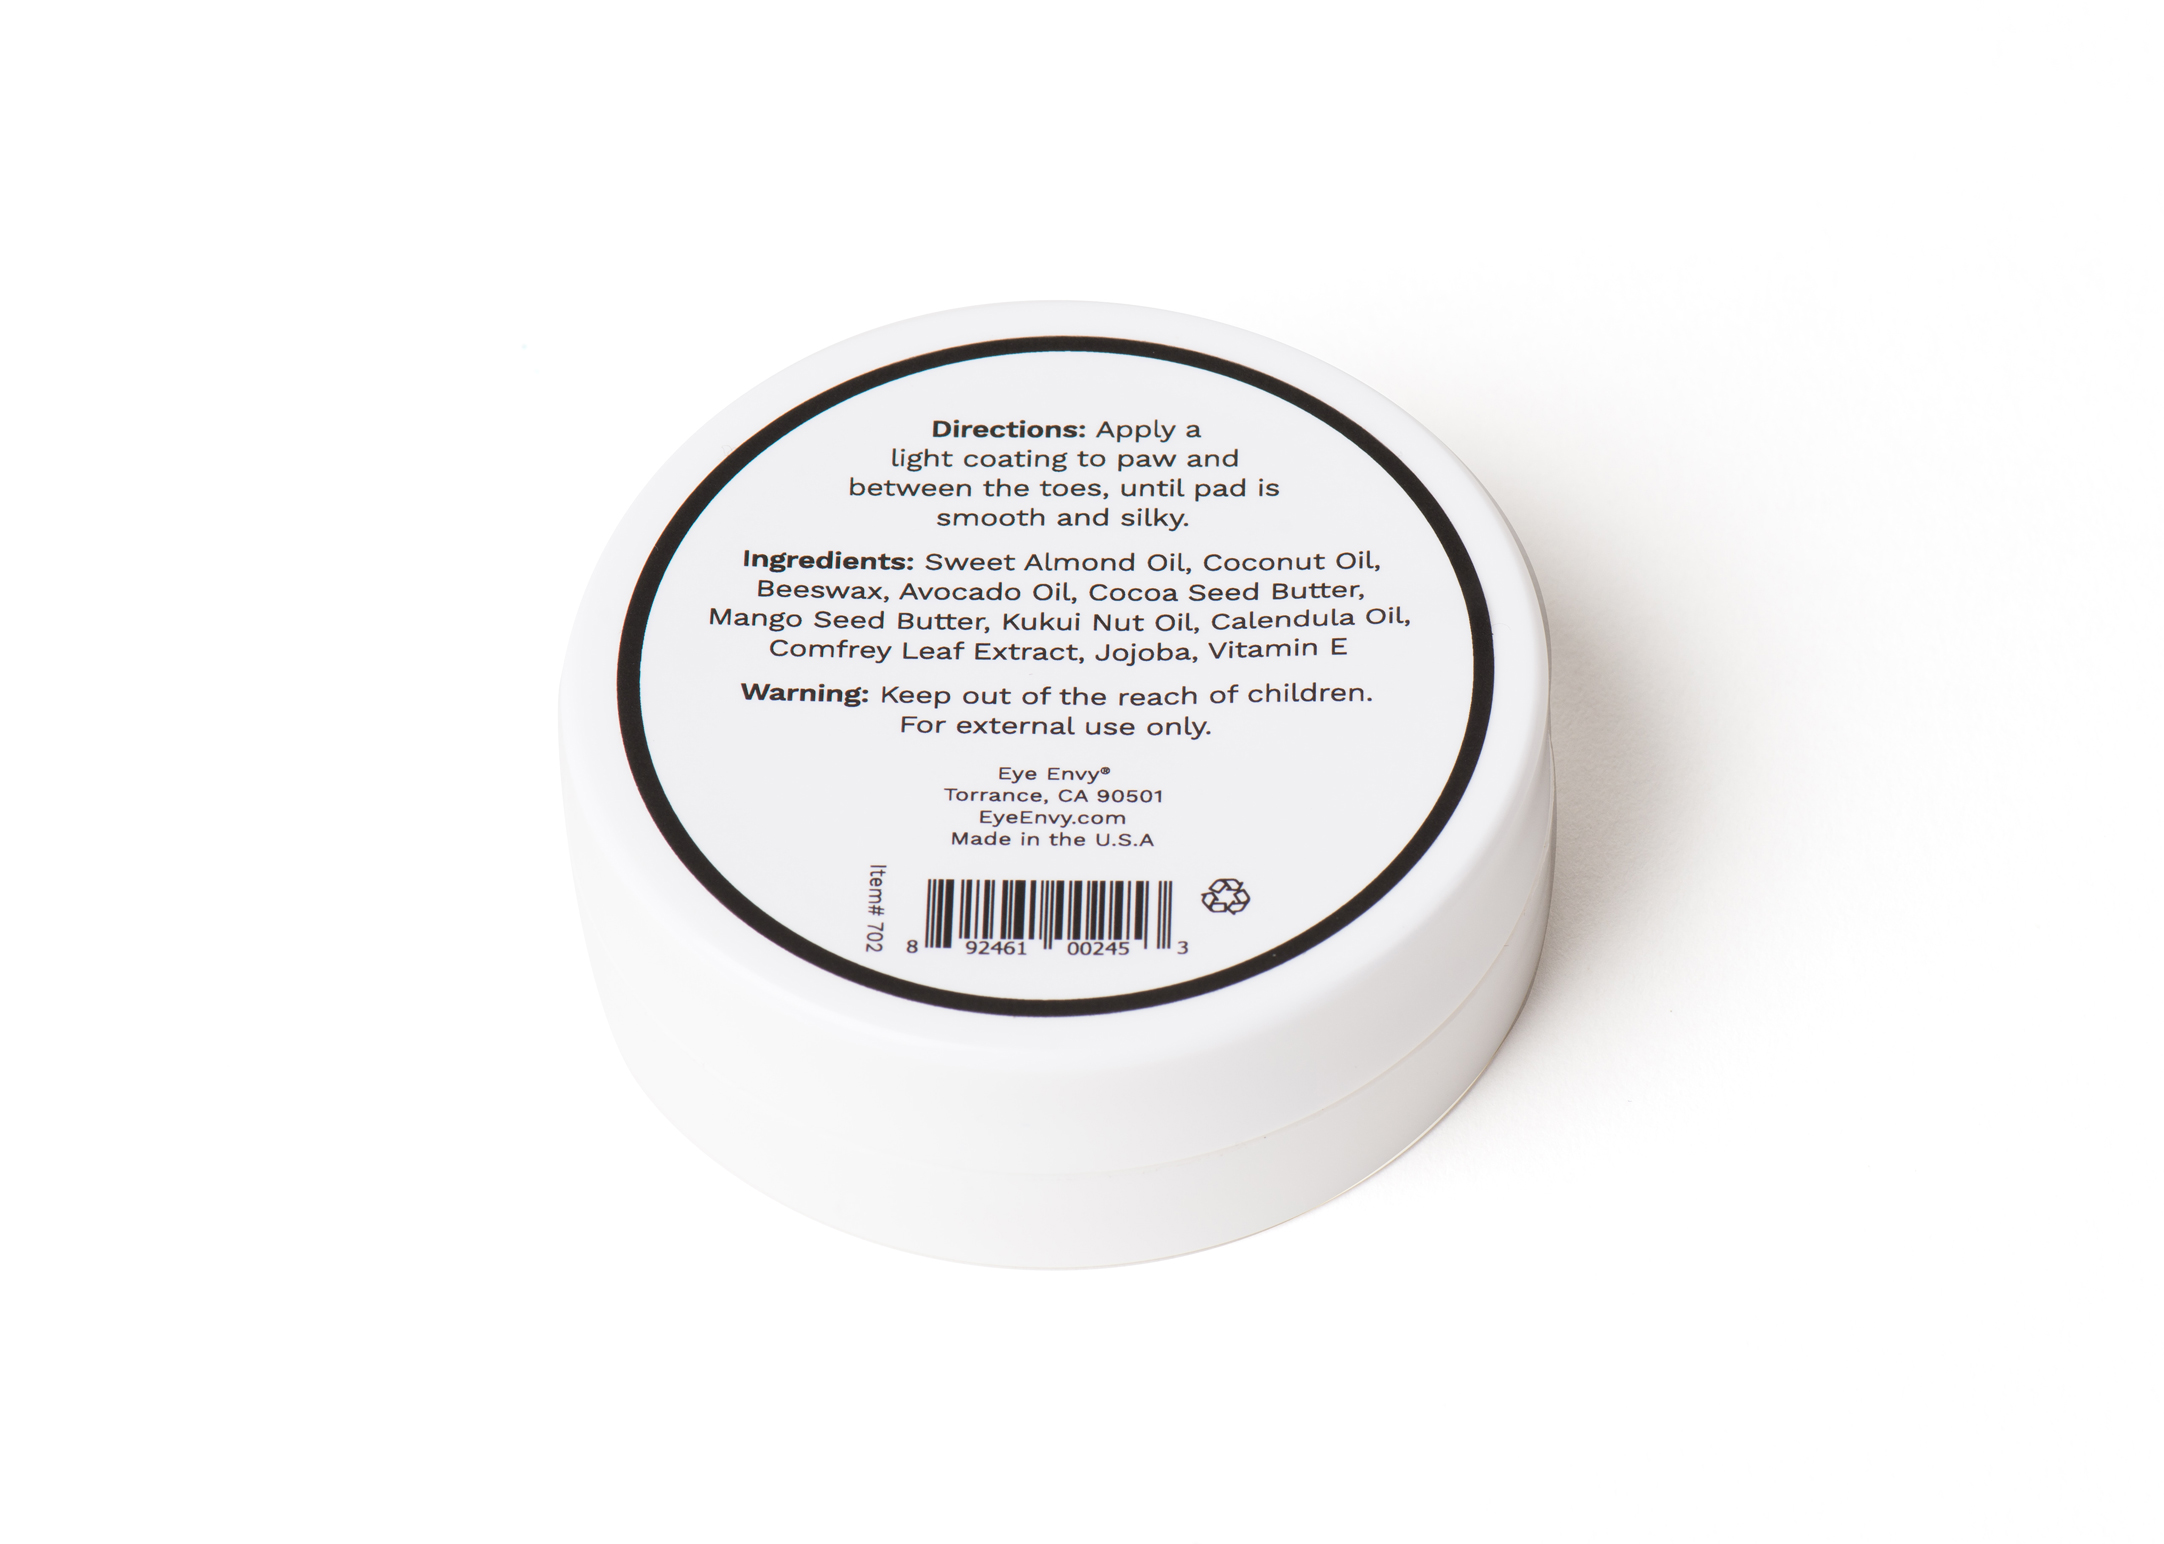 Eye Envy On the Paw Therapy Balm 41g